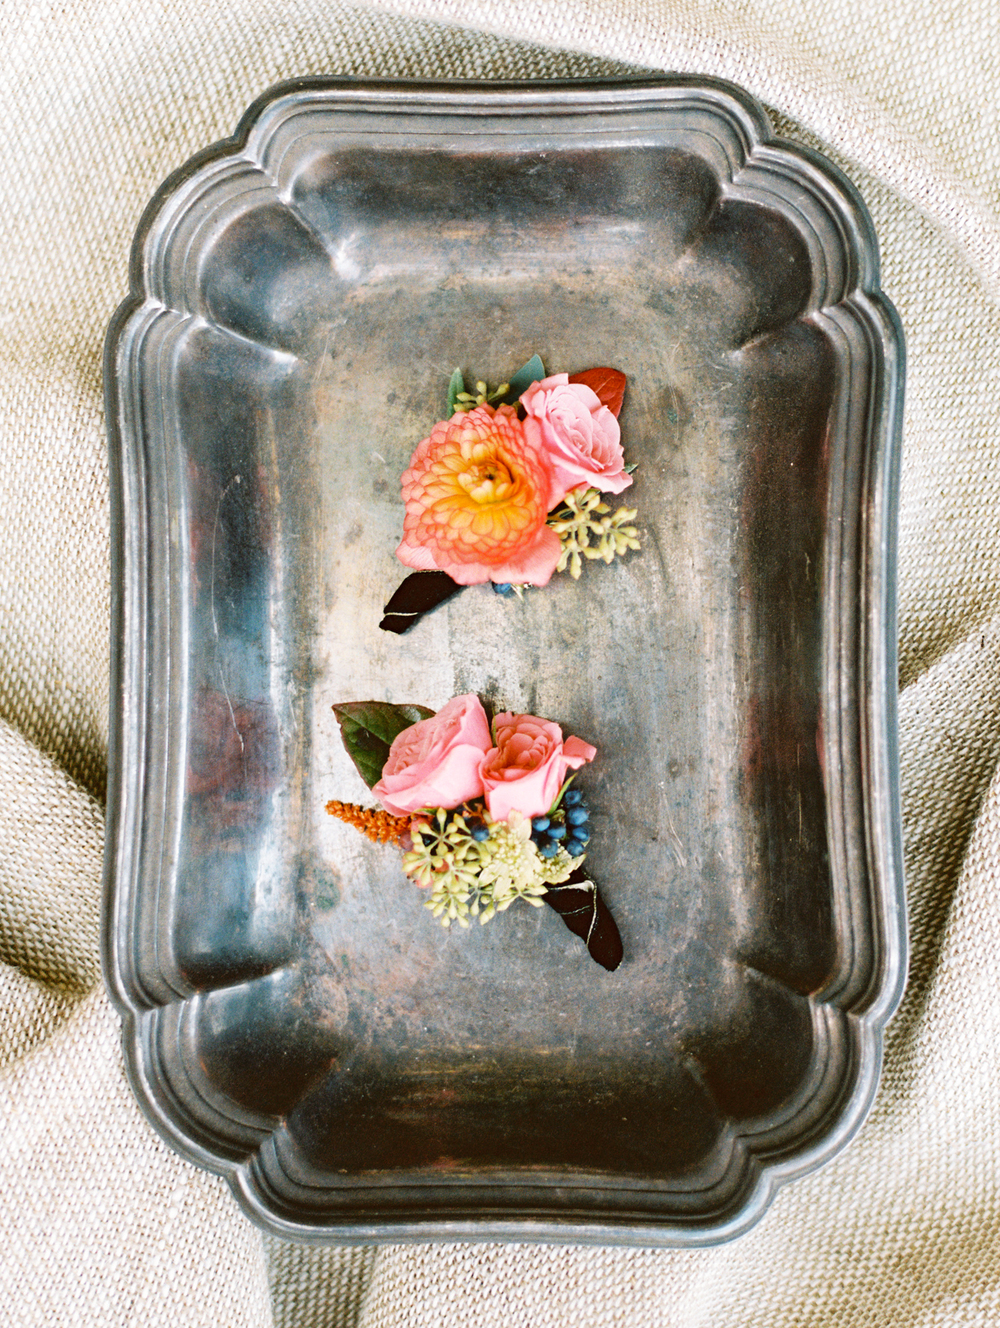 Holly Heider Chapple Flowers Image courtesy of Abby Jiu Photograhy